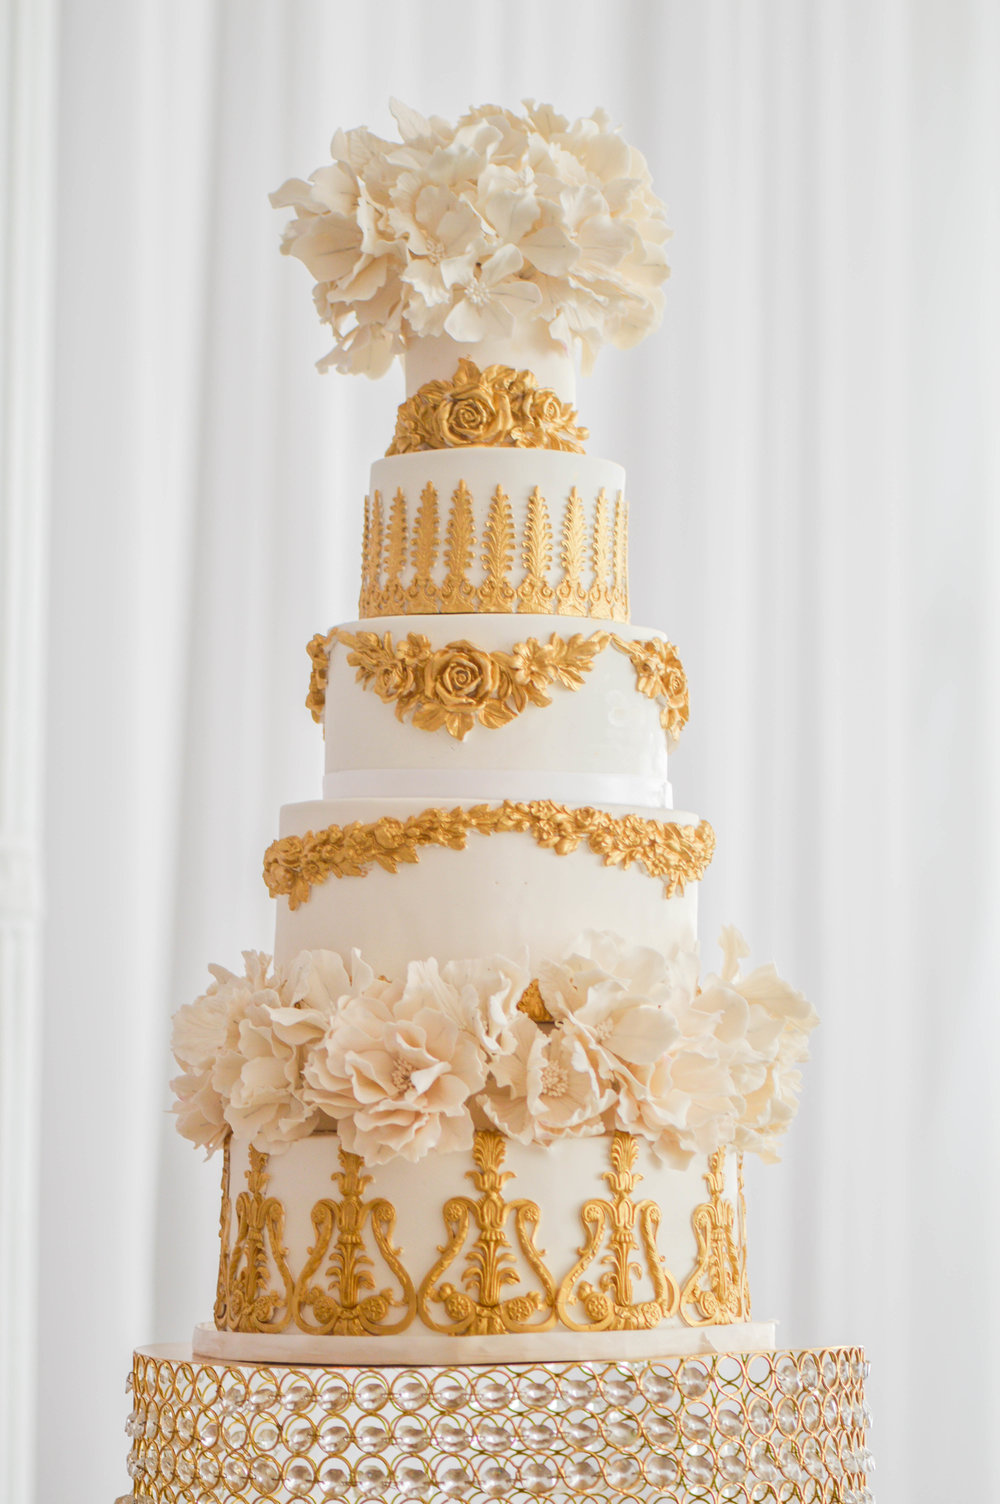 Beautiful, Elegant, Delicious - Luxe design and luxe taste! We create mouth-watering custom cakes.All of our cakes are scratch-baked using the finest locally-sourced ingredients. Our cakes feature five decadent layers of cake and four luxurious layers of fillings - customized to your preference.